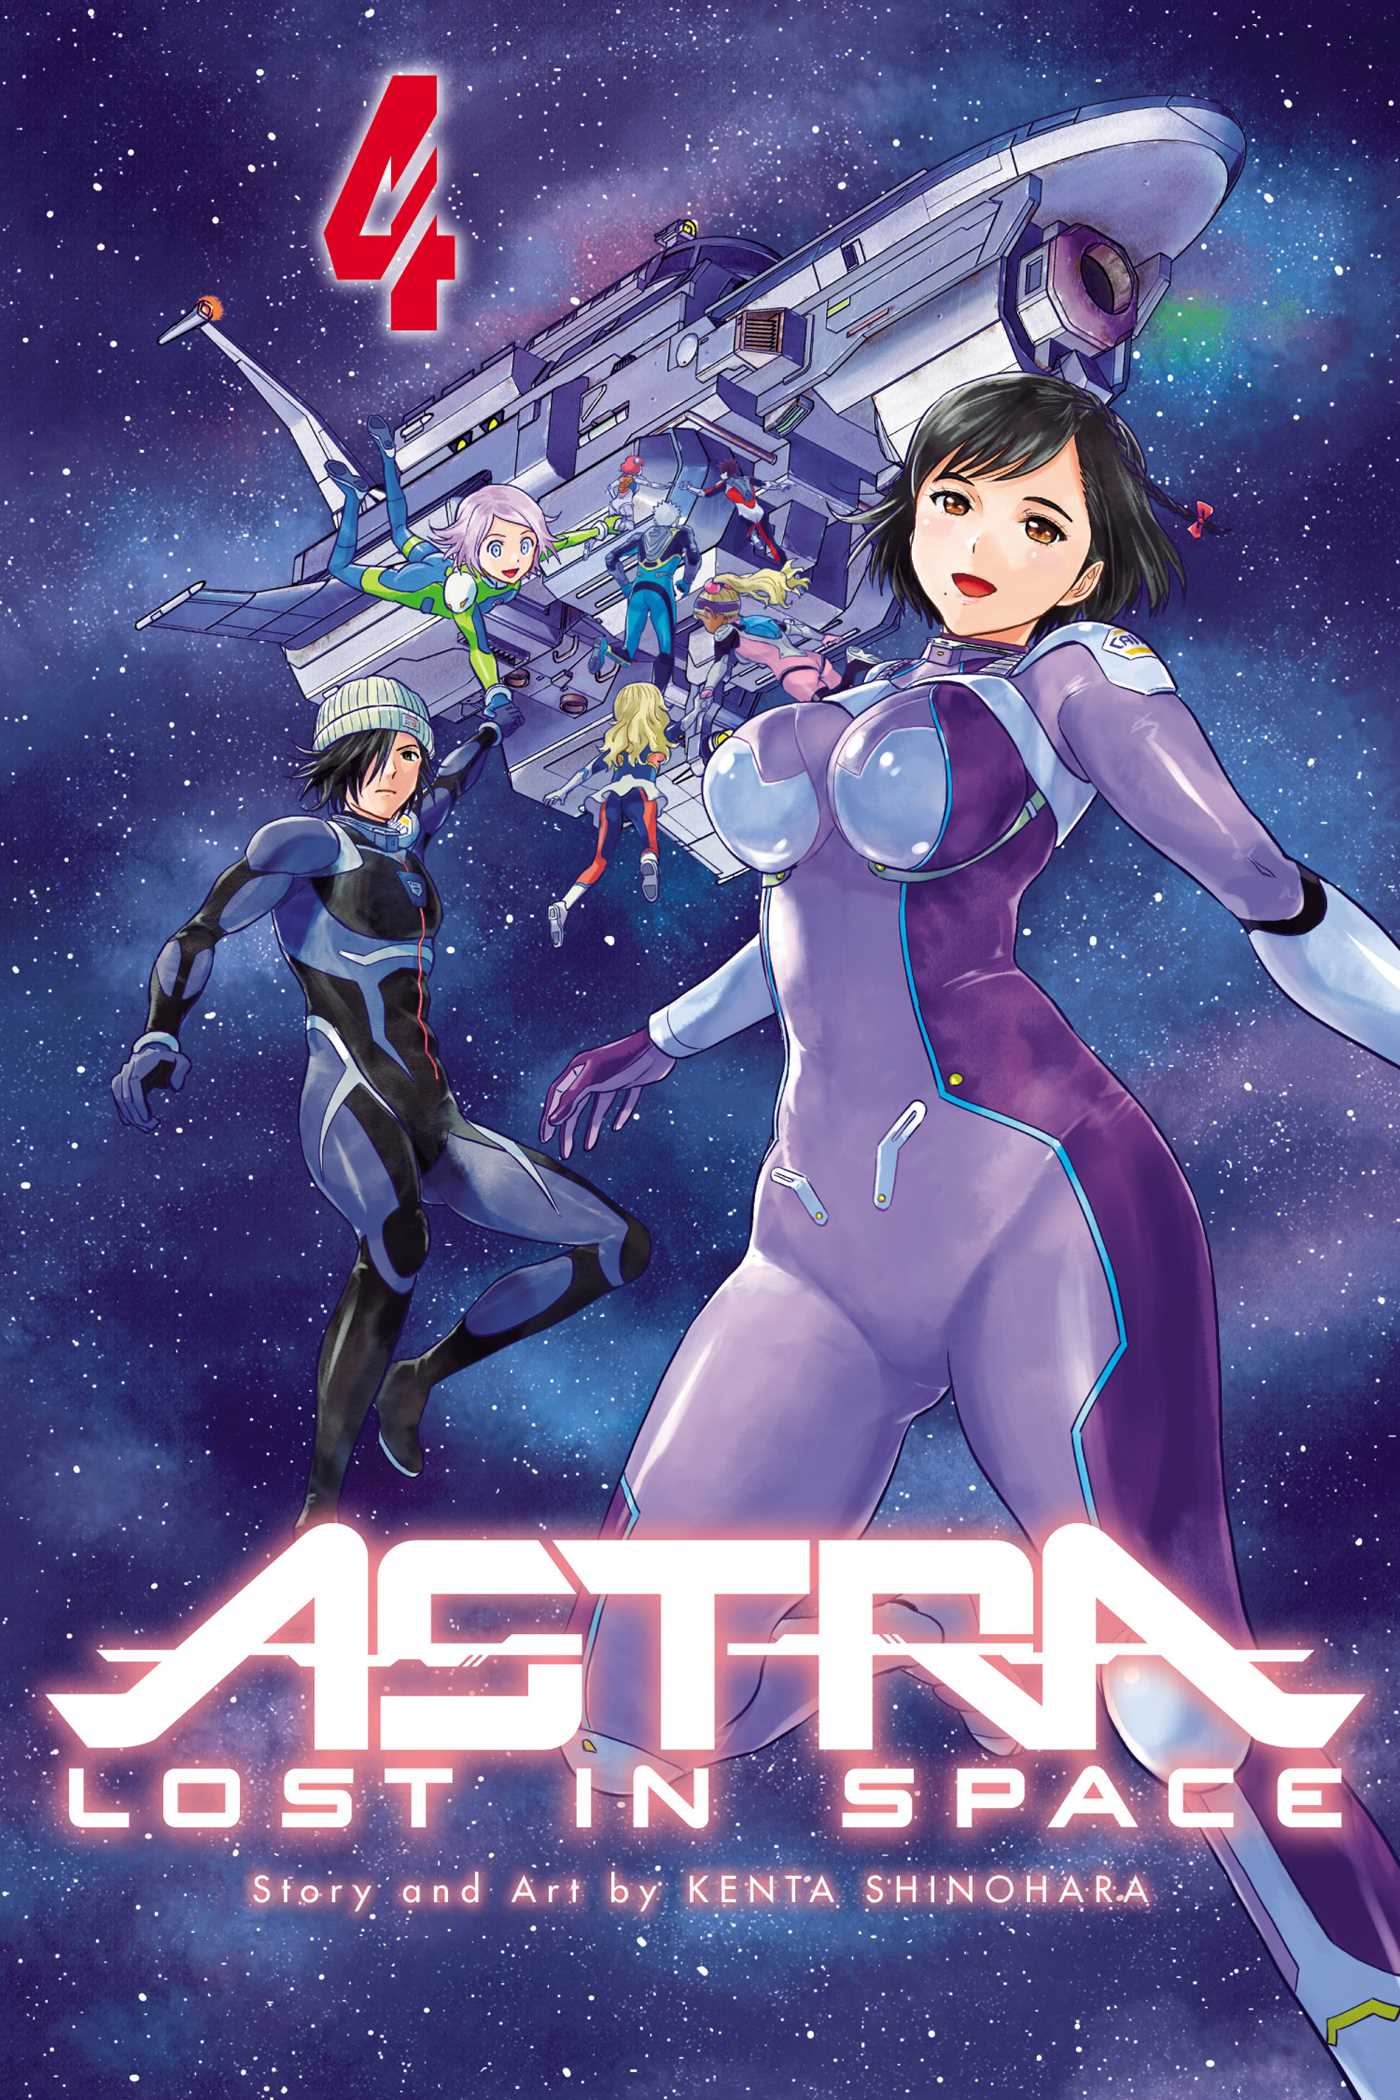 Astra Lost in Space Vol. 4 Review